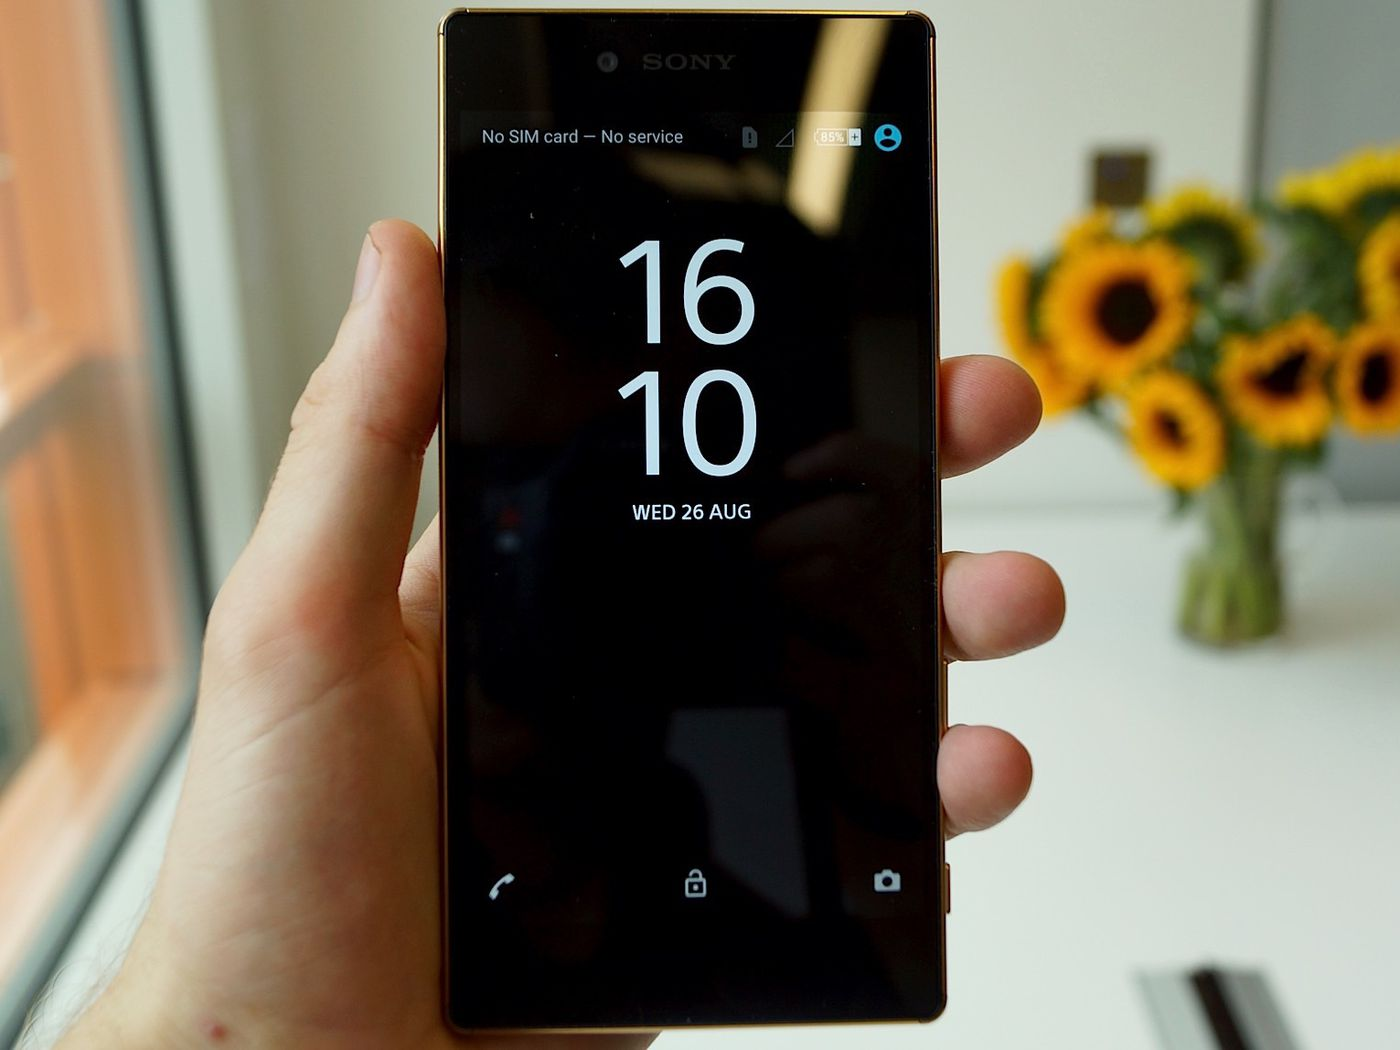 Sony's Xperia Z5 Premium has an absurd 4K display - The Verge